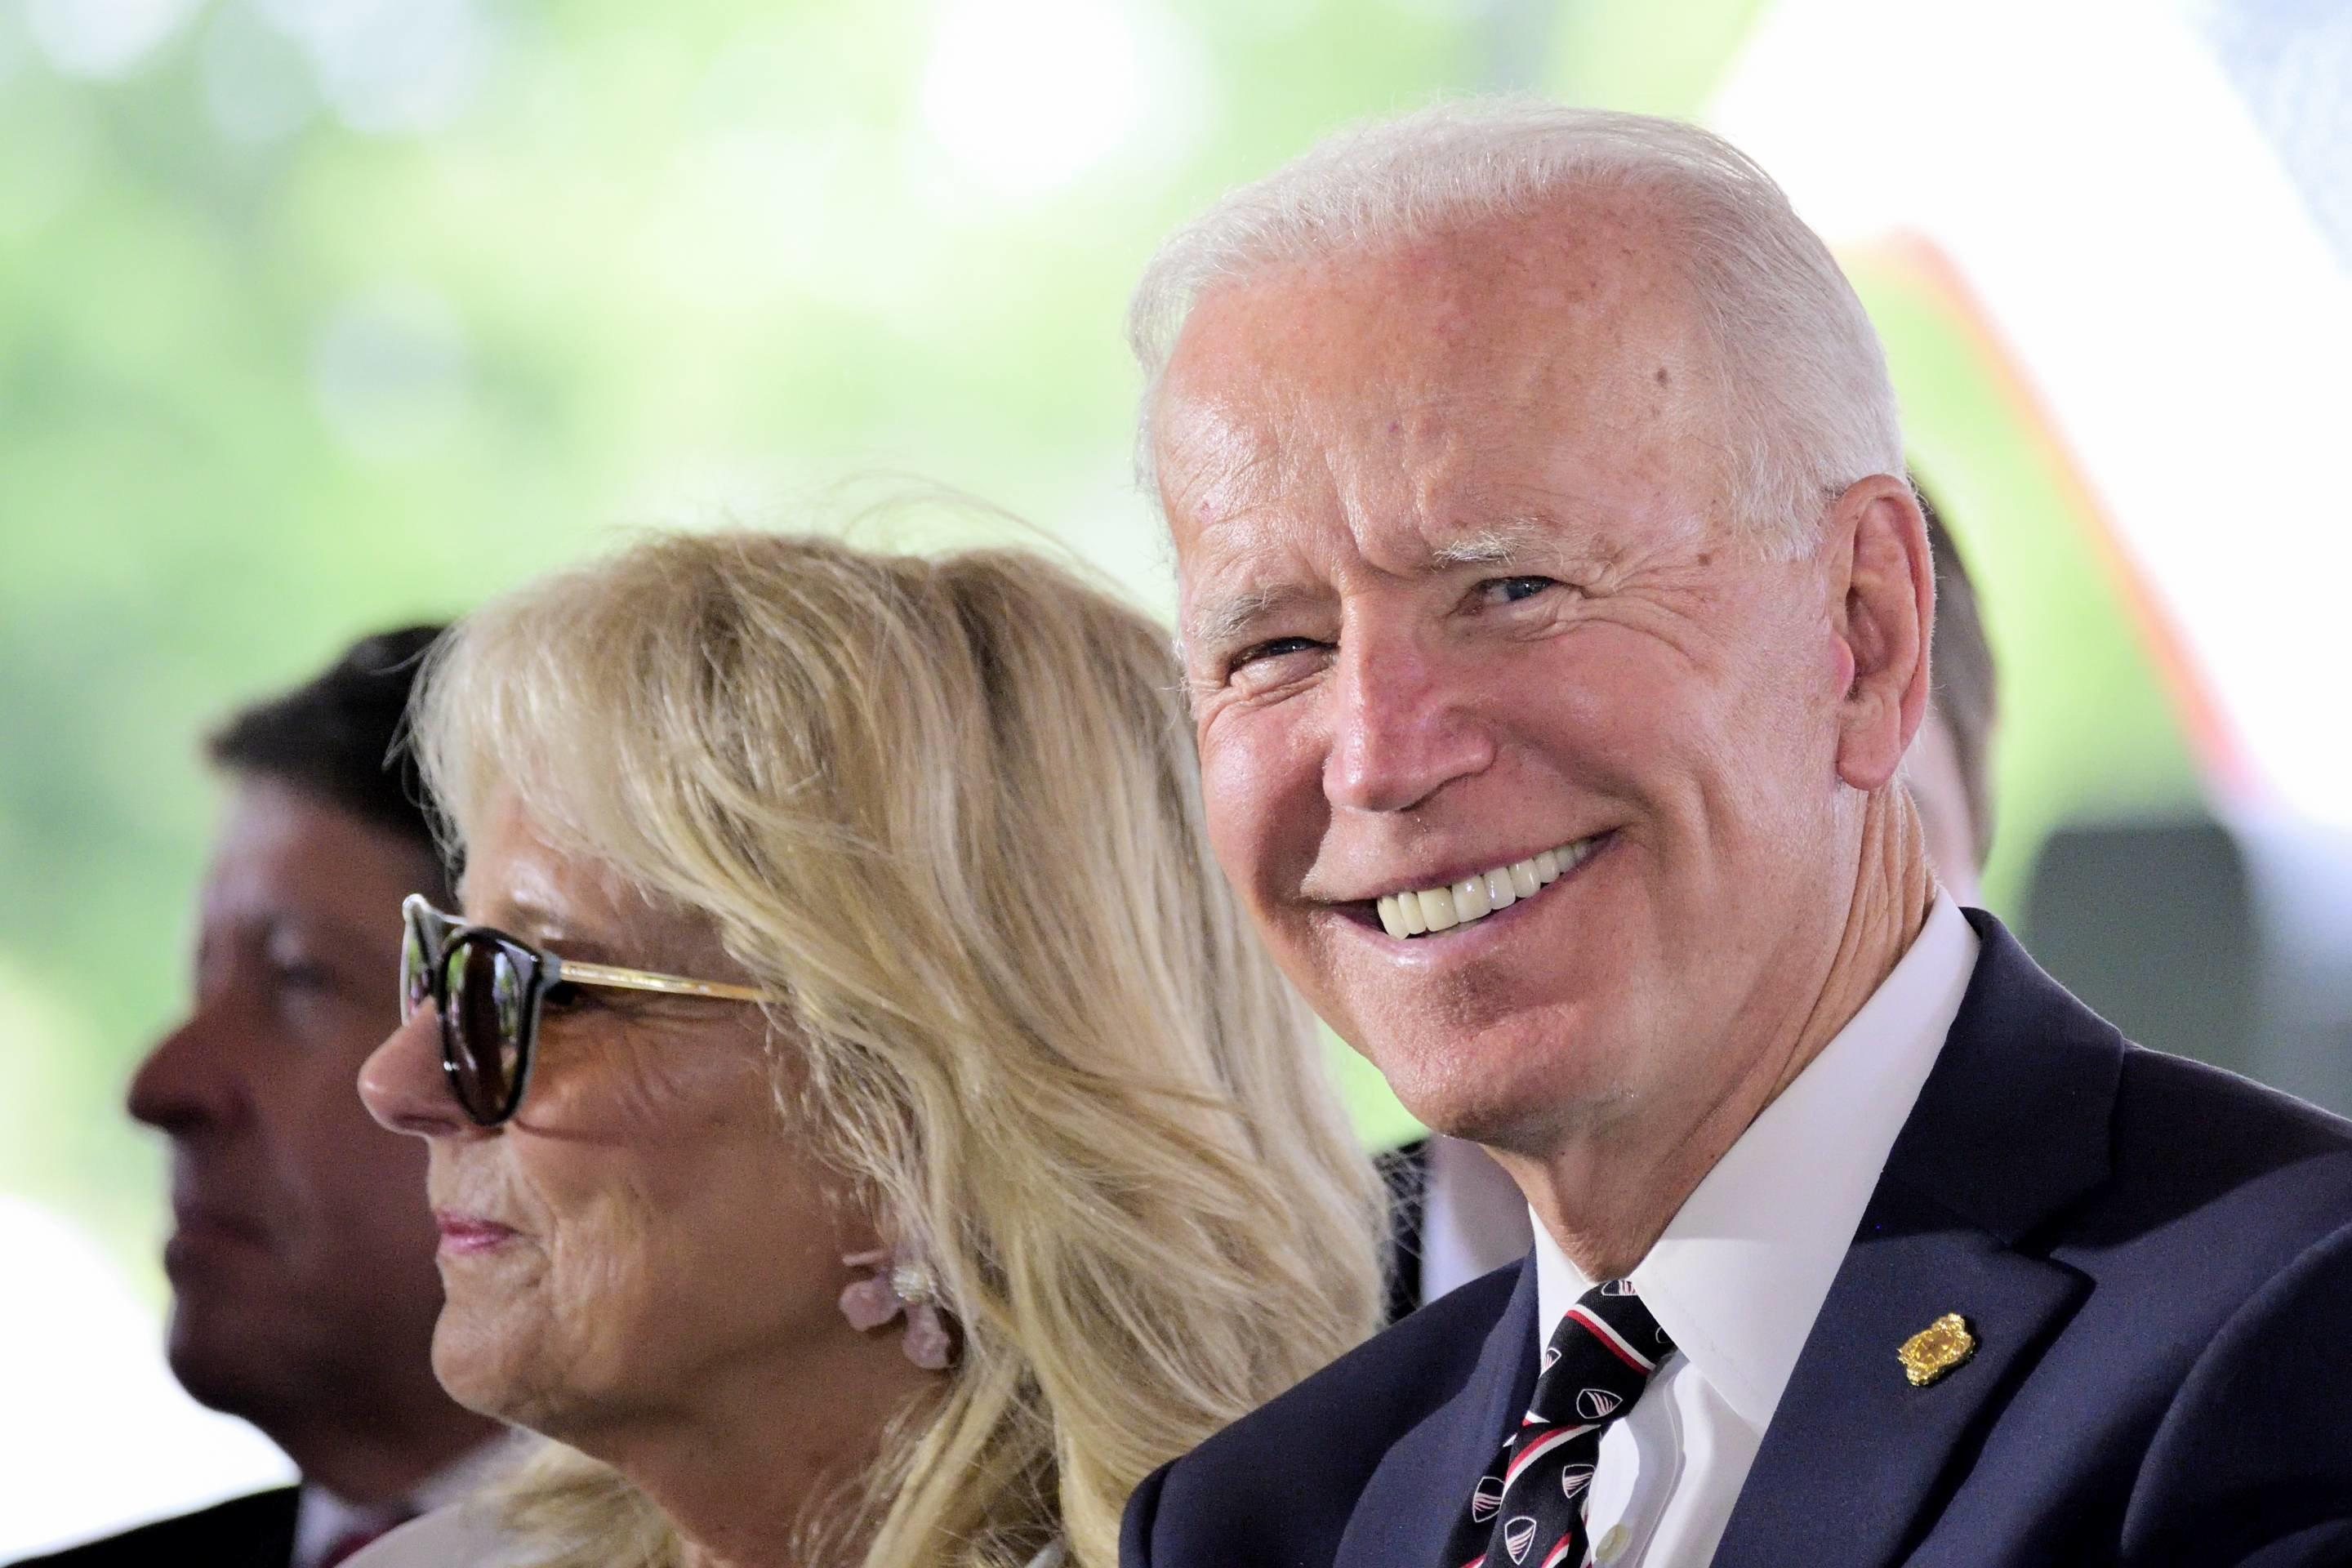 Biden Leads Trump by 'Landslide' in Latest Quinnipiac Poll